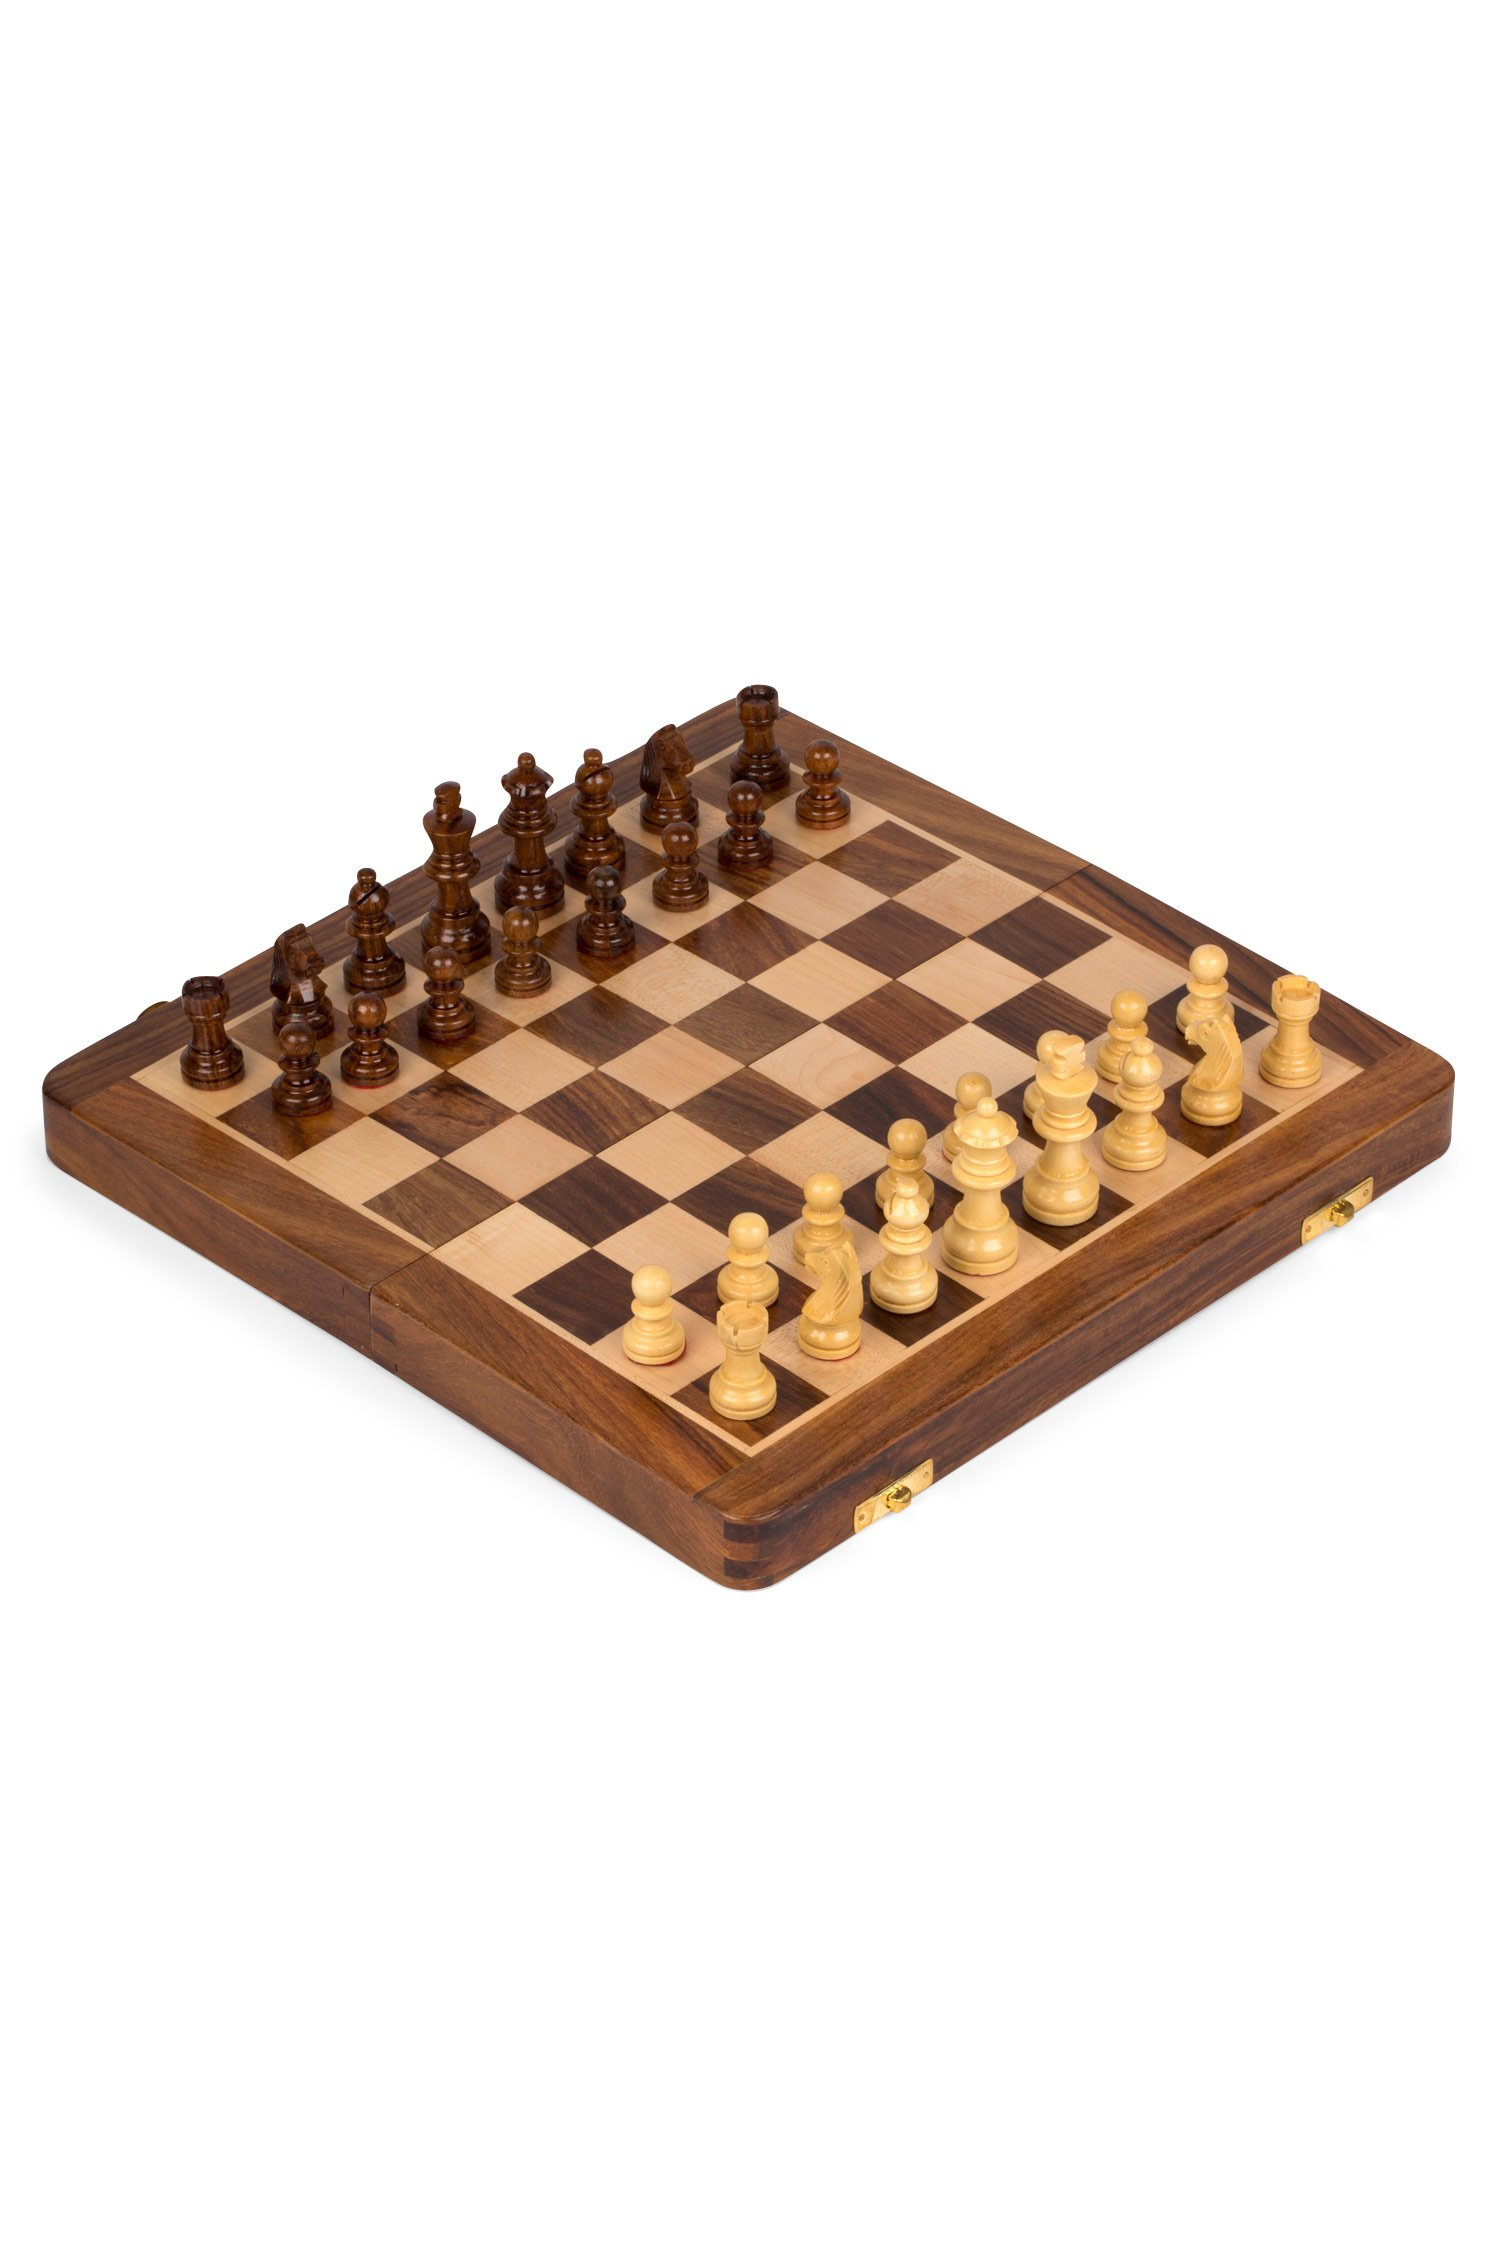 Wood Chess Set With Folding Carrying Board 'Store Away Chess Set'